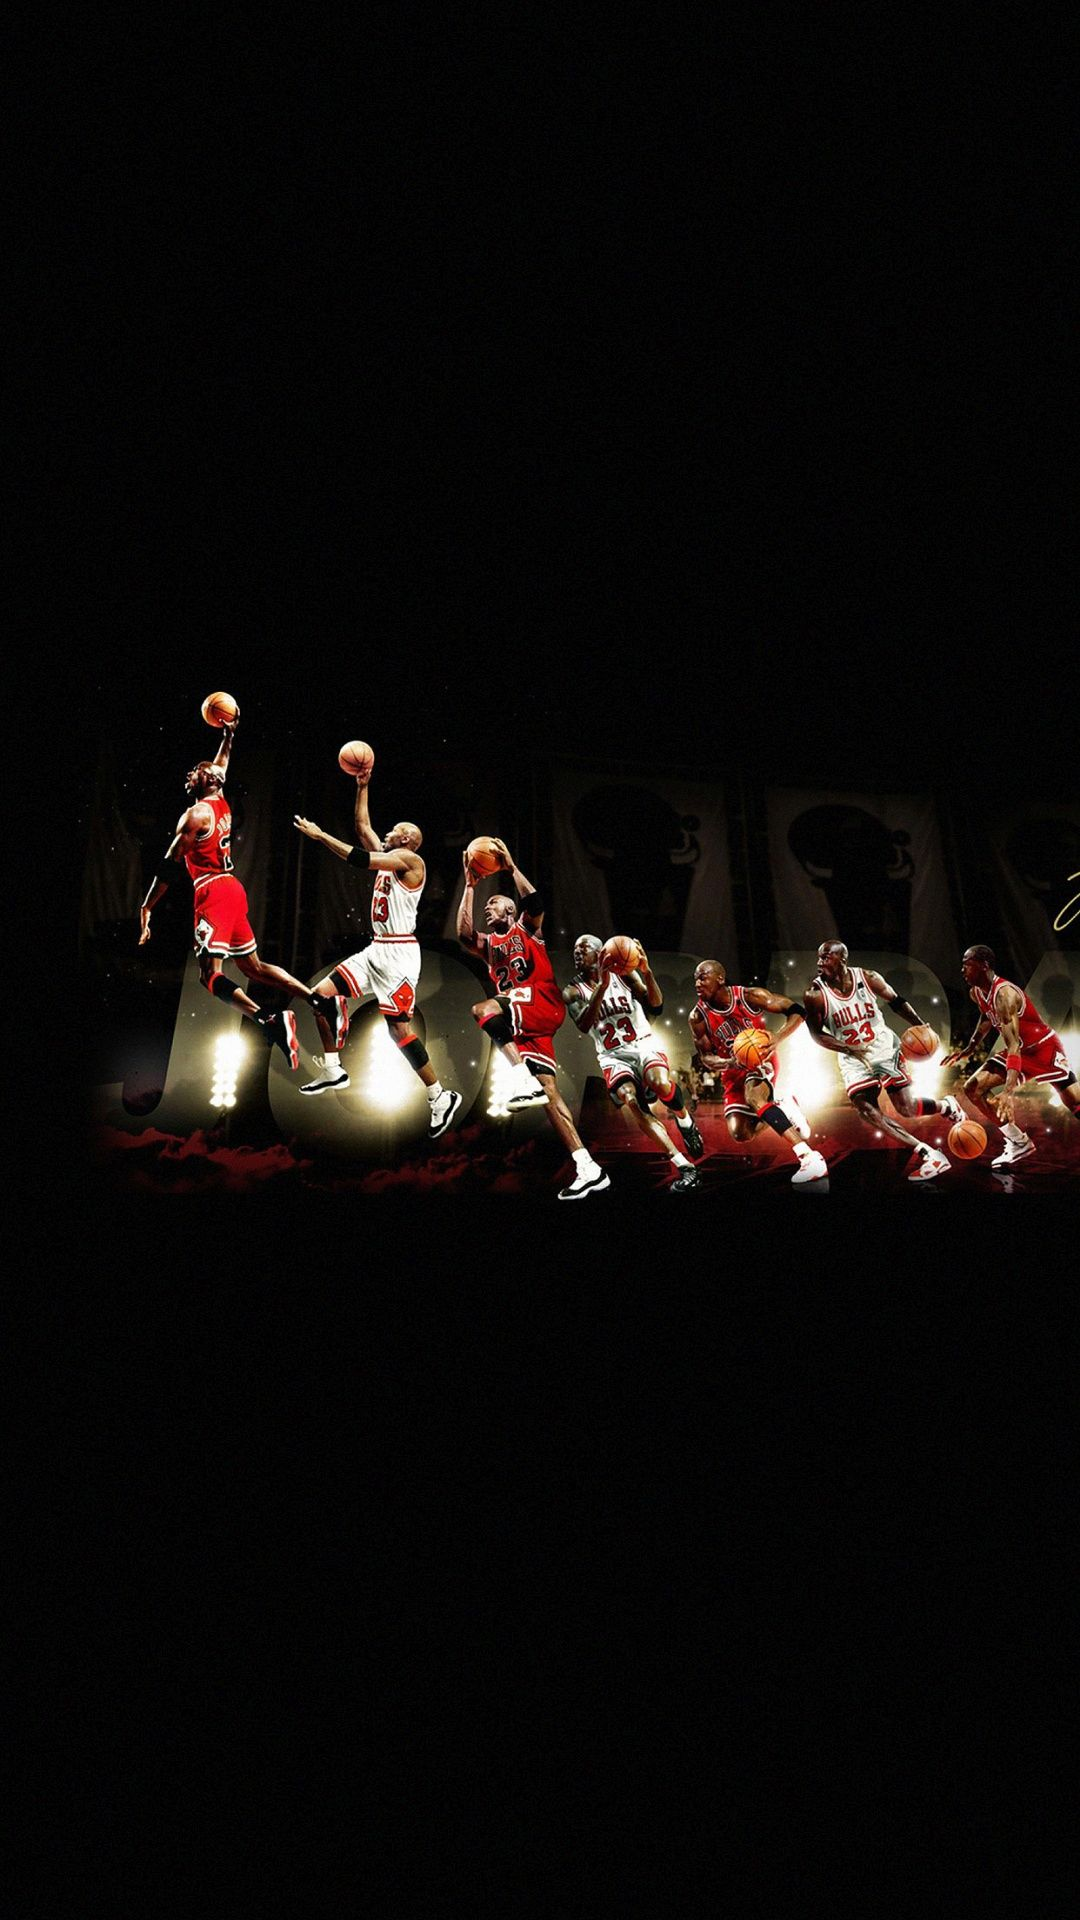 Michael Jordan Dunk Legend NBA IPhone 6 Wallpaper